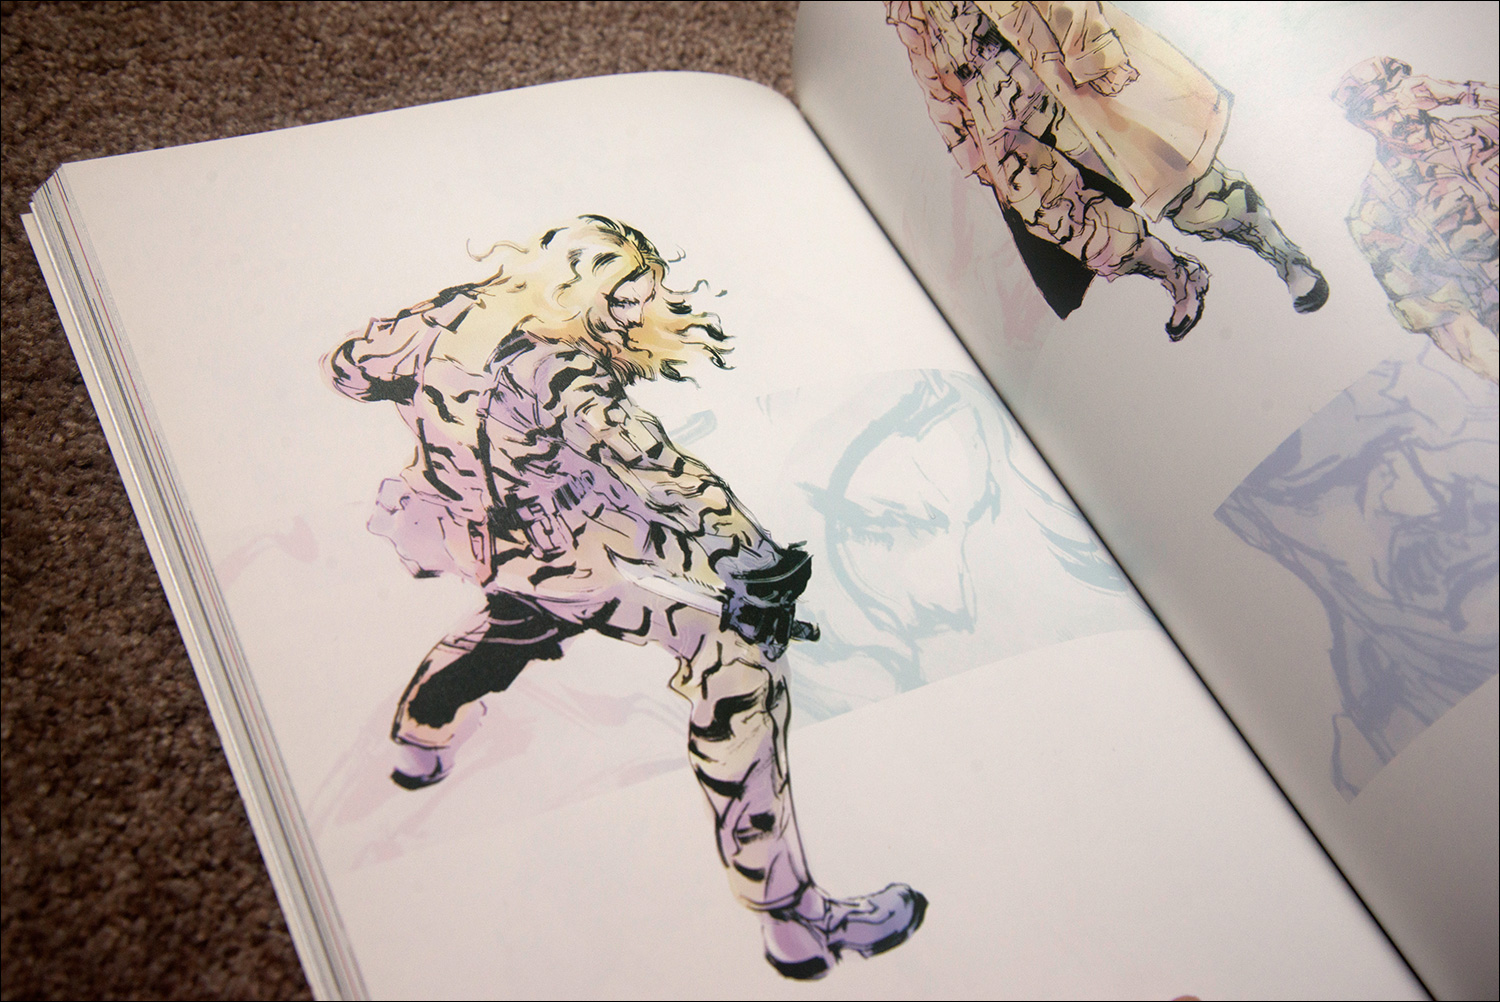 The-Art-of-Metal-Gear-Solid-Liquid-Art